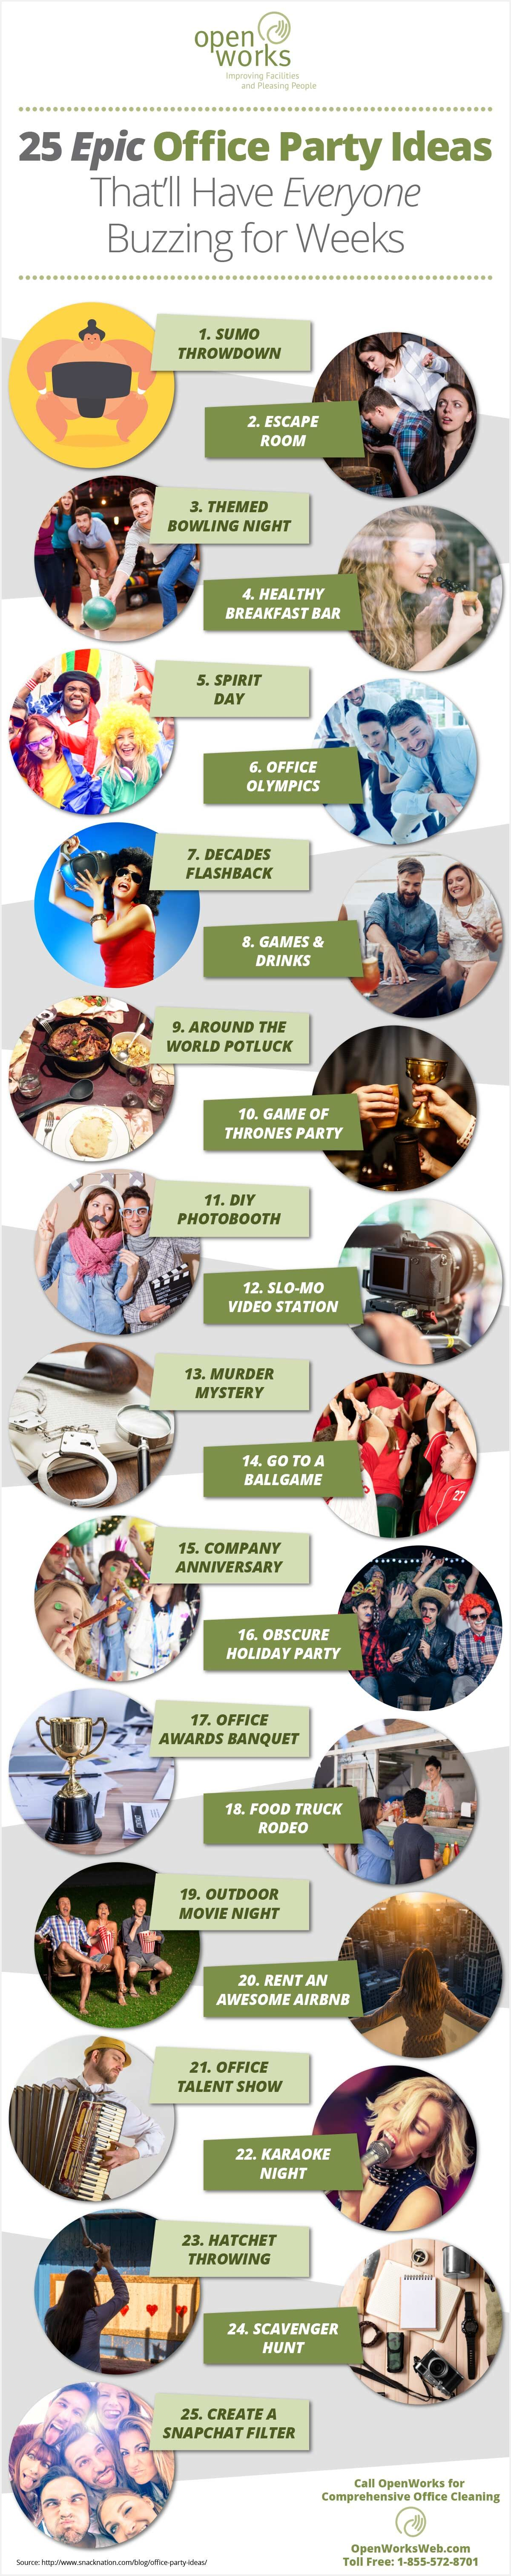 Infographic : OpenWorks Holiday Party Ideas